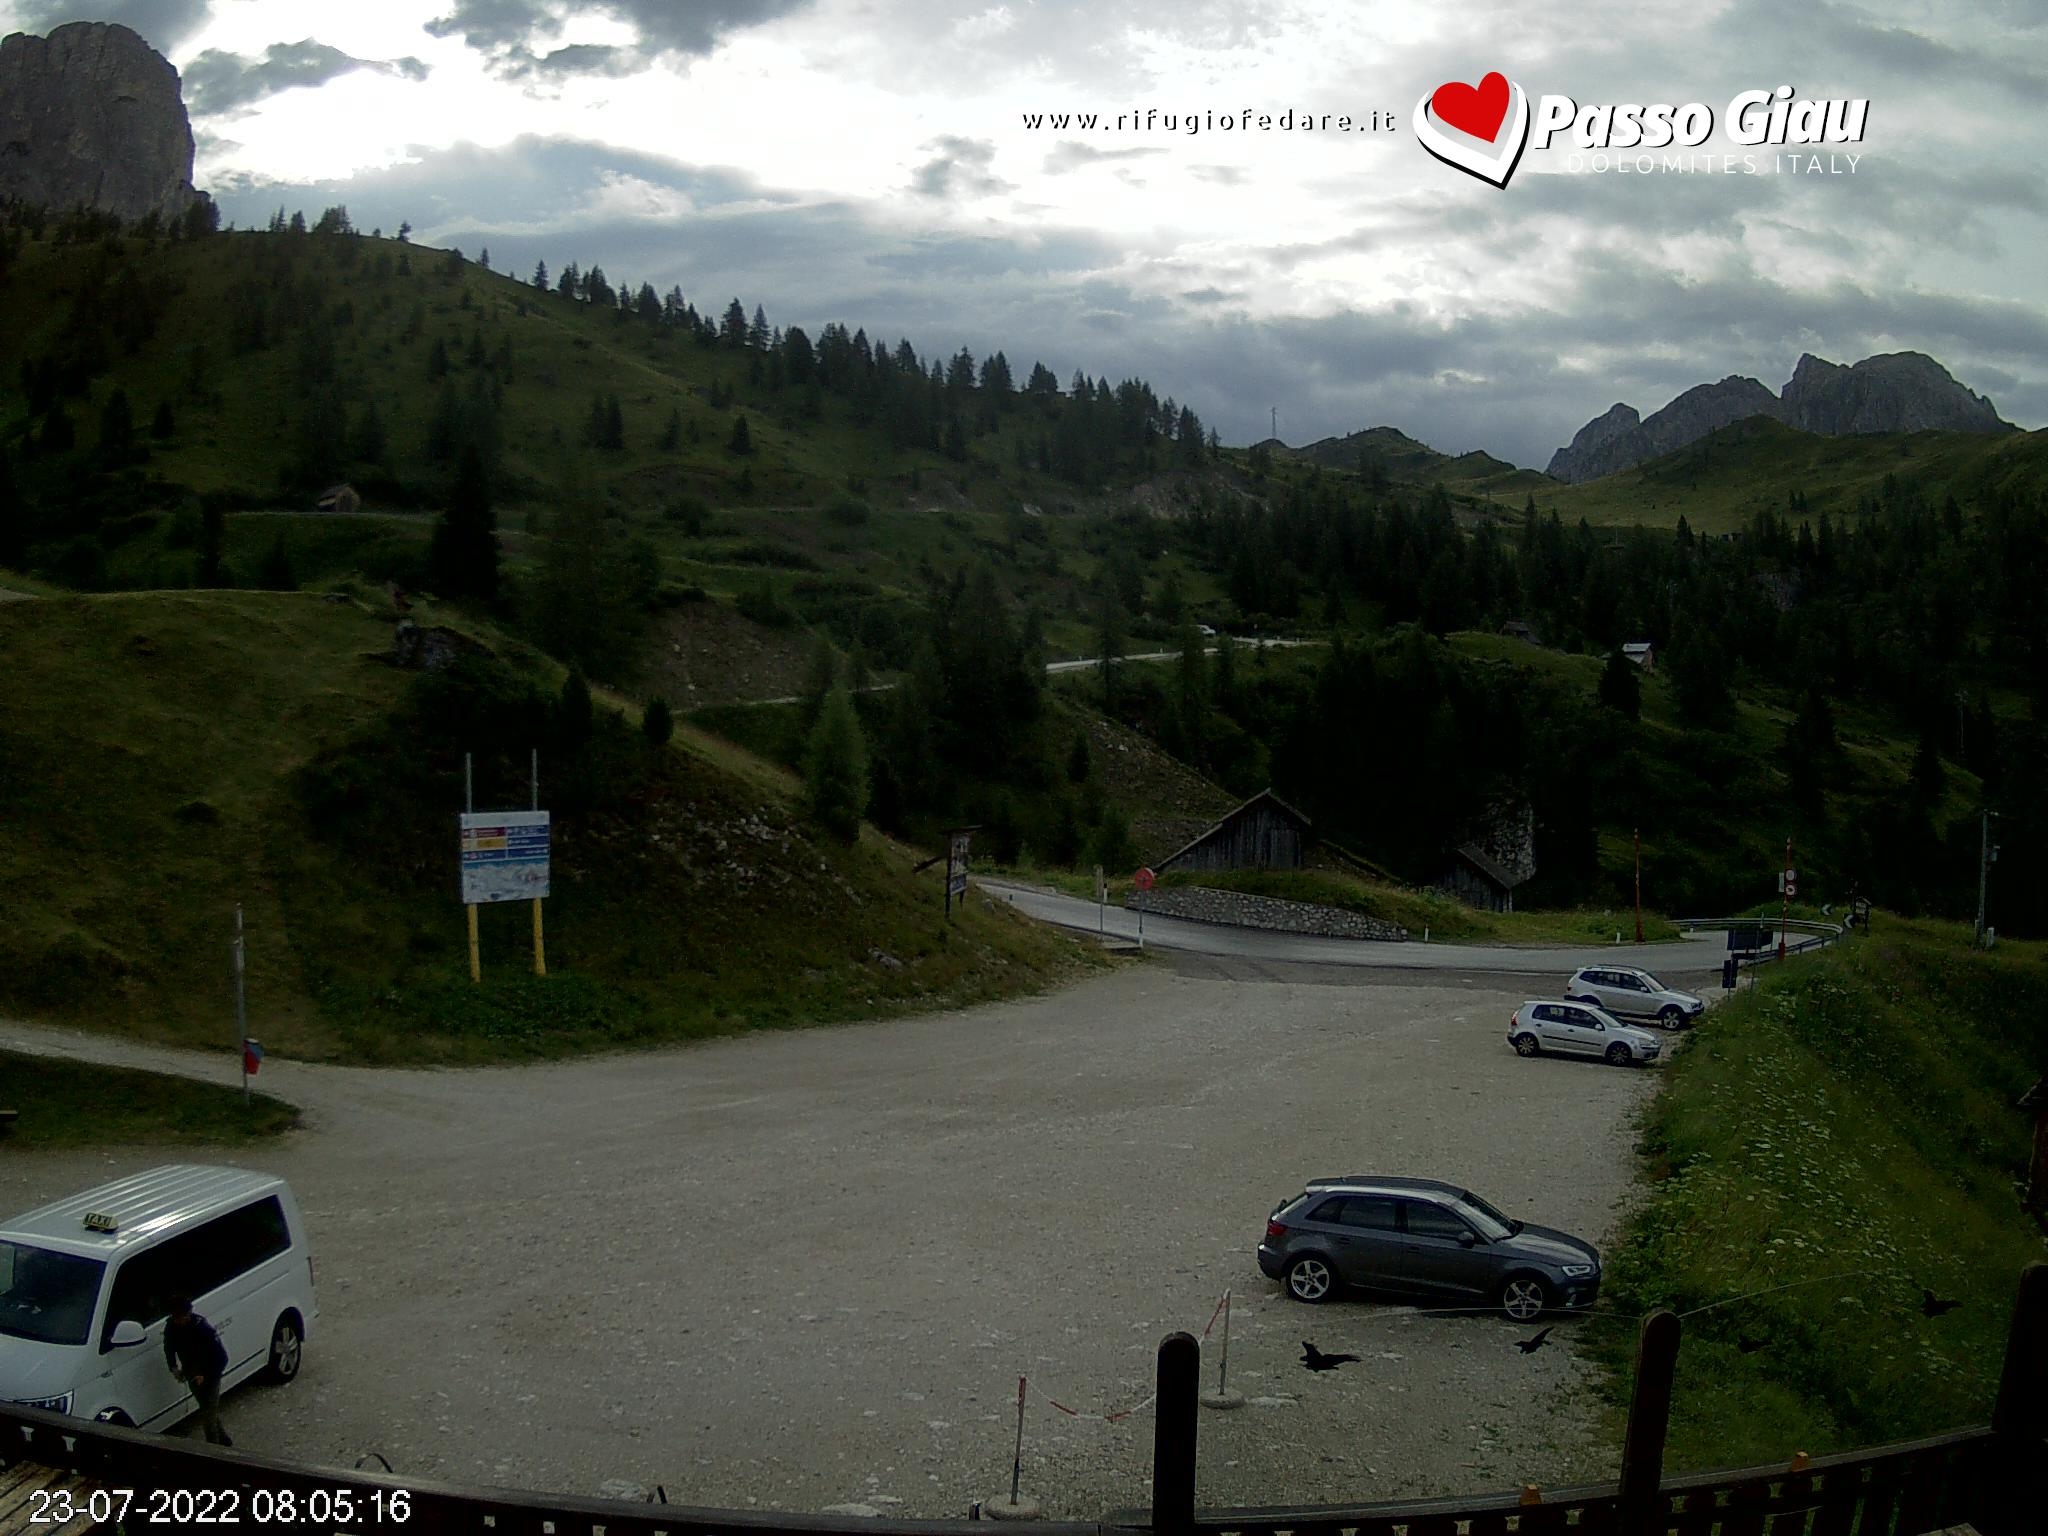 Webcam Refuge Fedare Mt. Civetta view